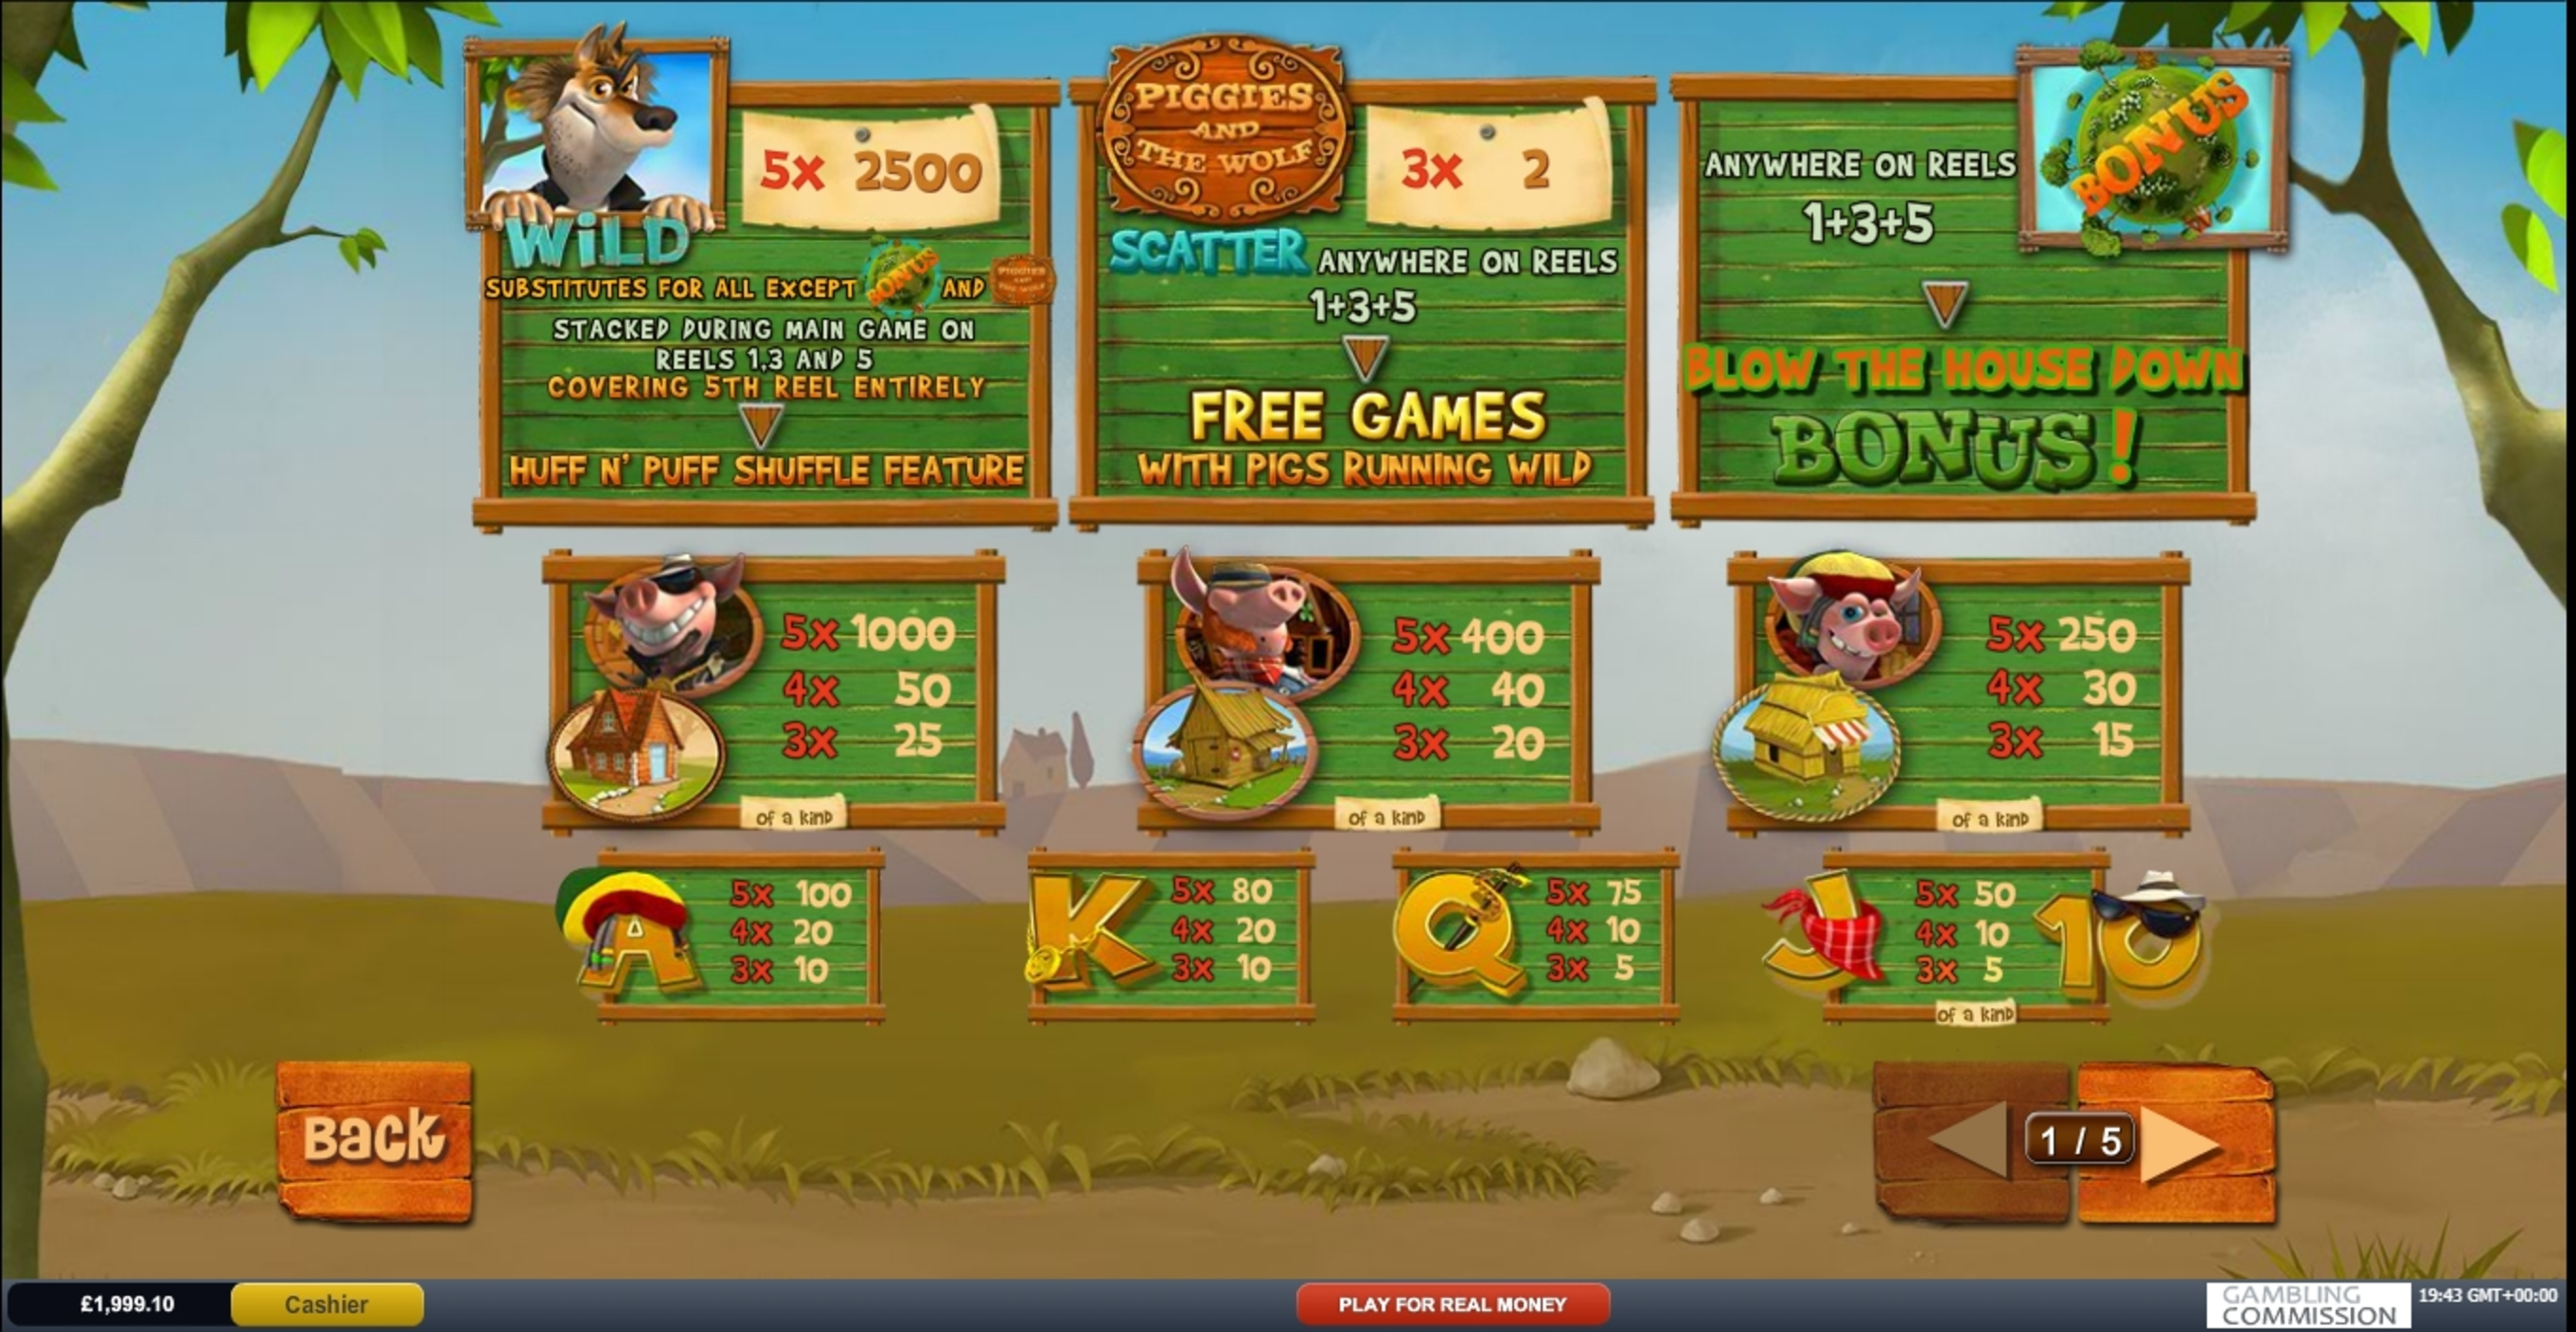 Info of Piggies and The Wolf Slot Game by Playtech